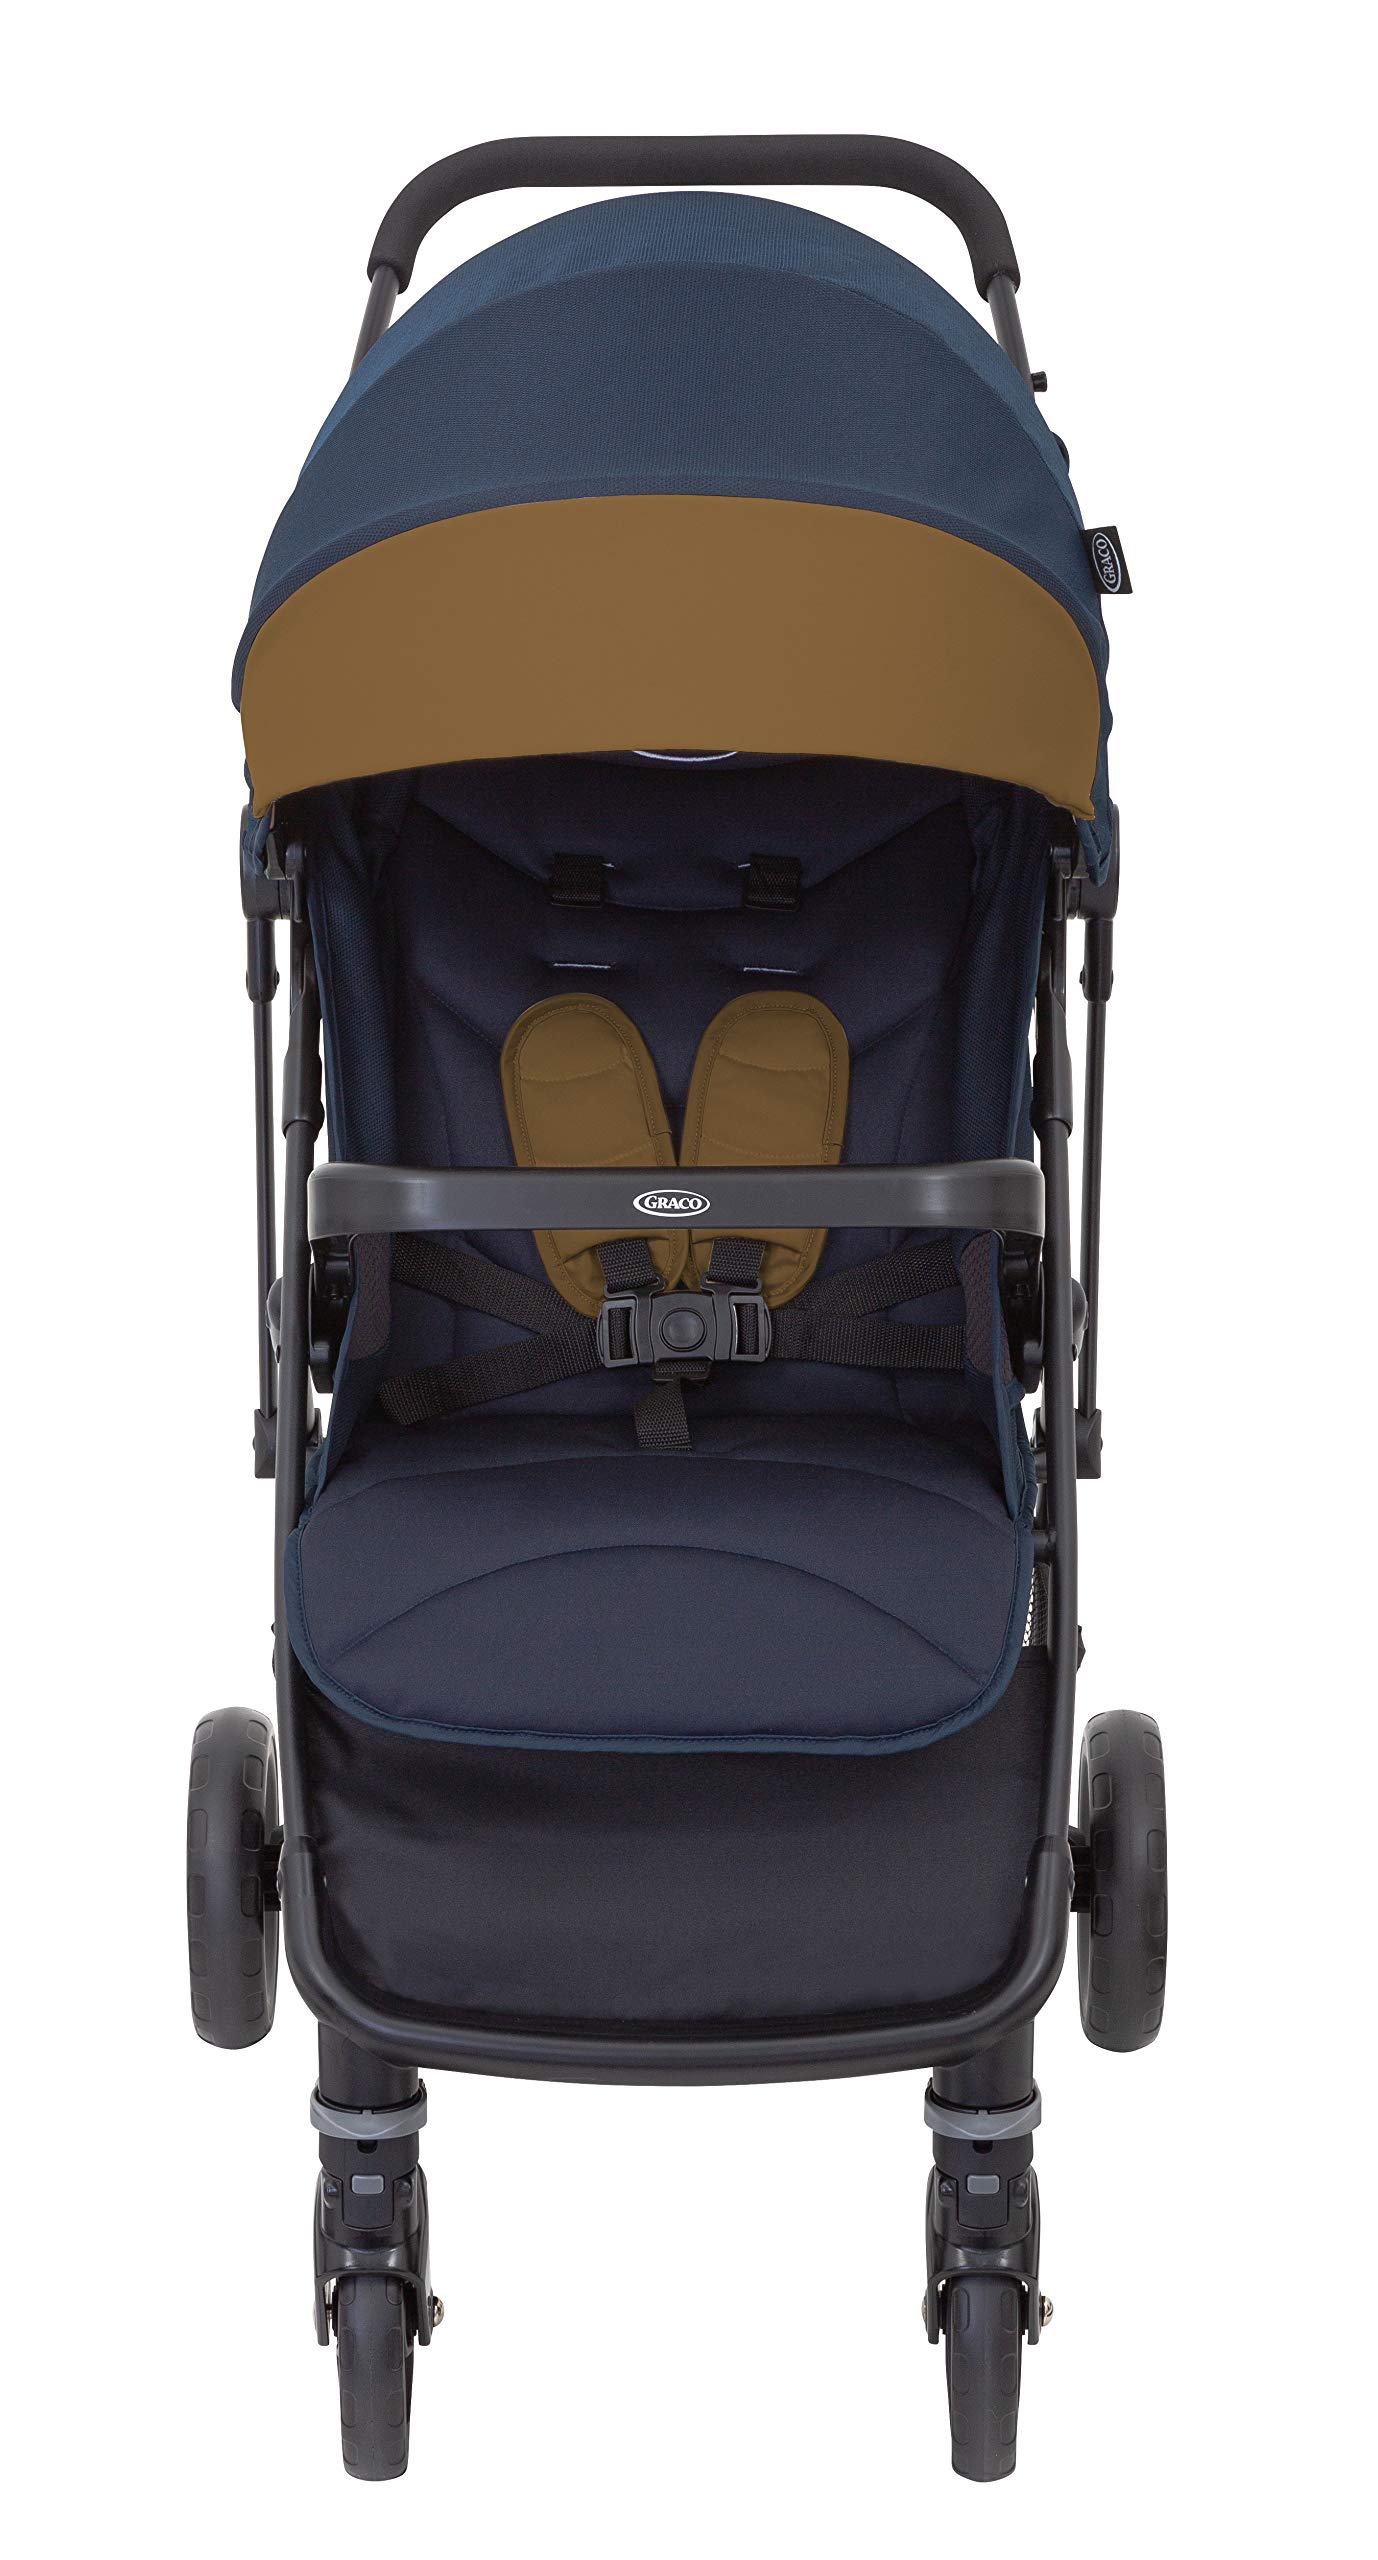 Graco Breaze Lite i-Size Travel System, Eclipse Graco From birth to 3 years approx. (0-15kg) Travel system package with snug essentials isize infant car seat included Lightweight stroller at only 6.5kg 3